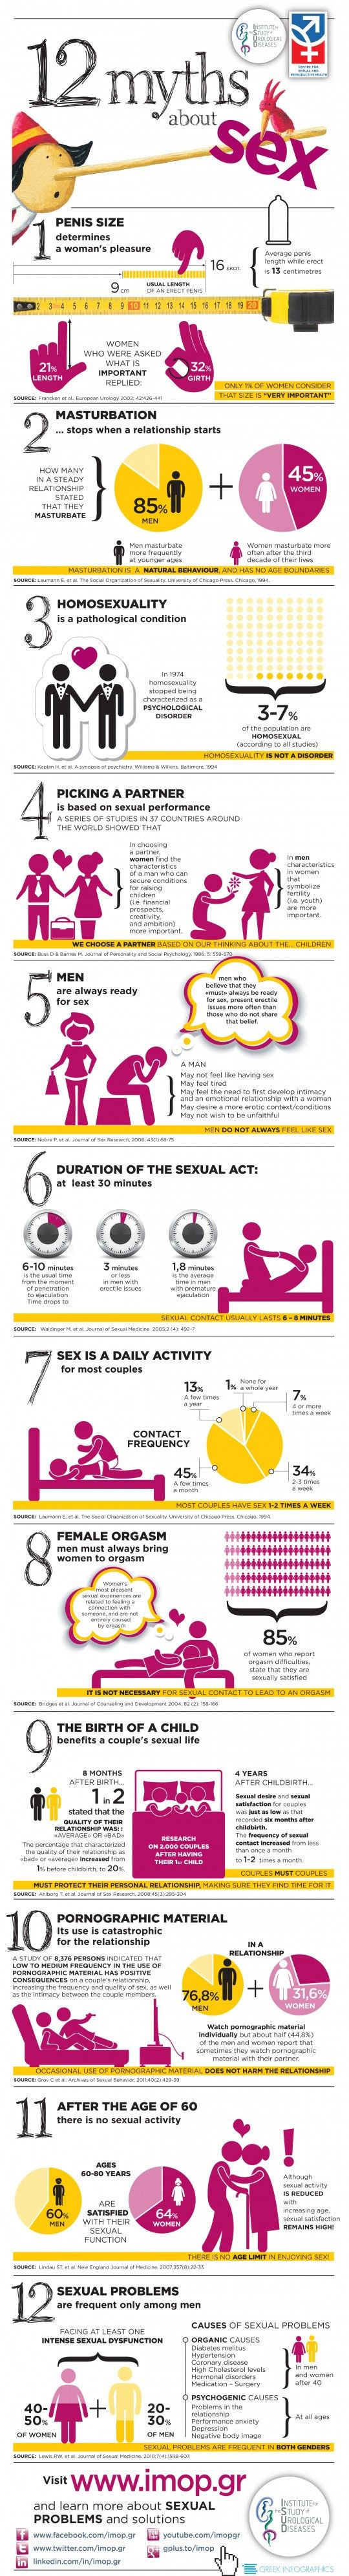 12 Myths about #Sex | #infographic #health